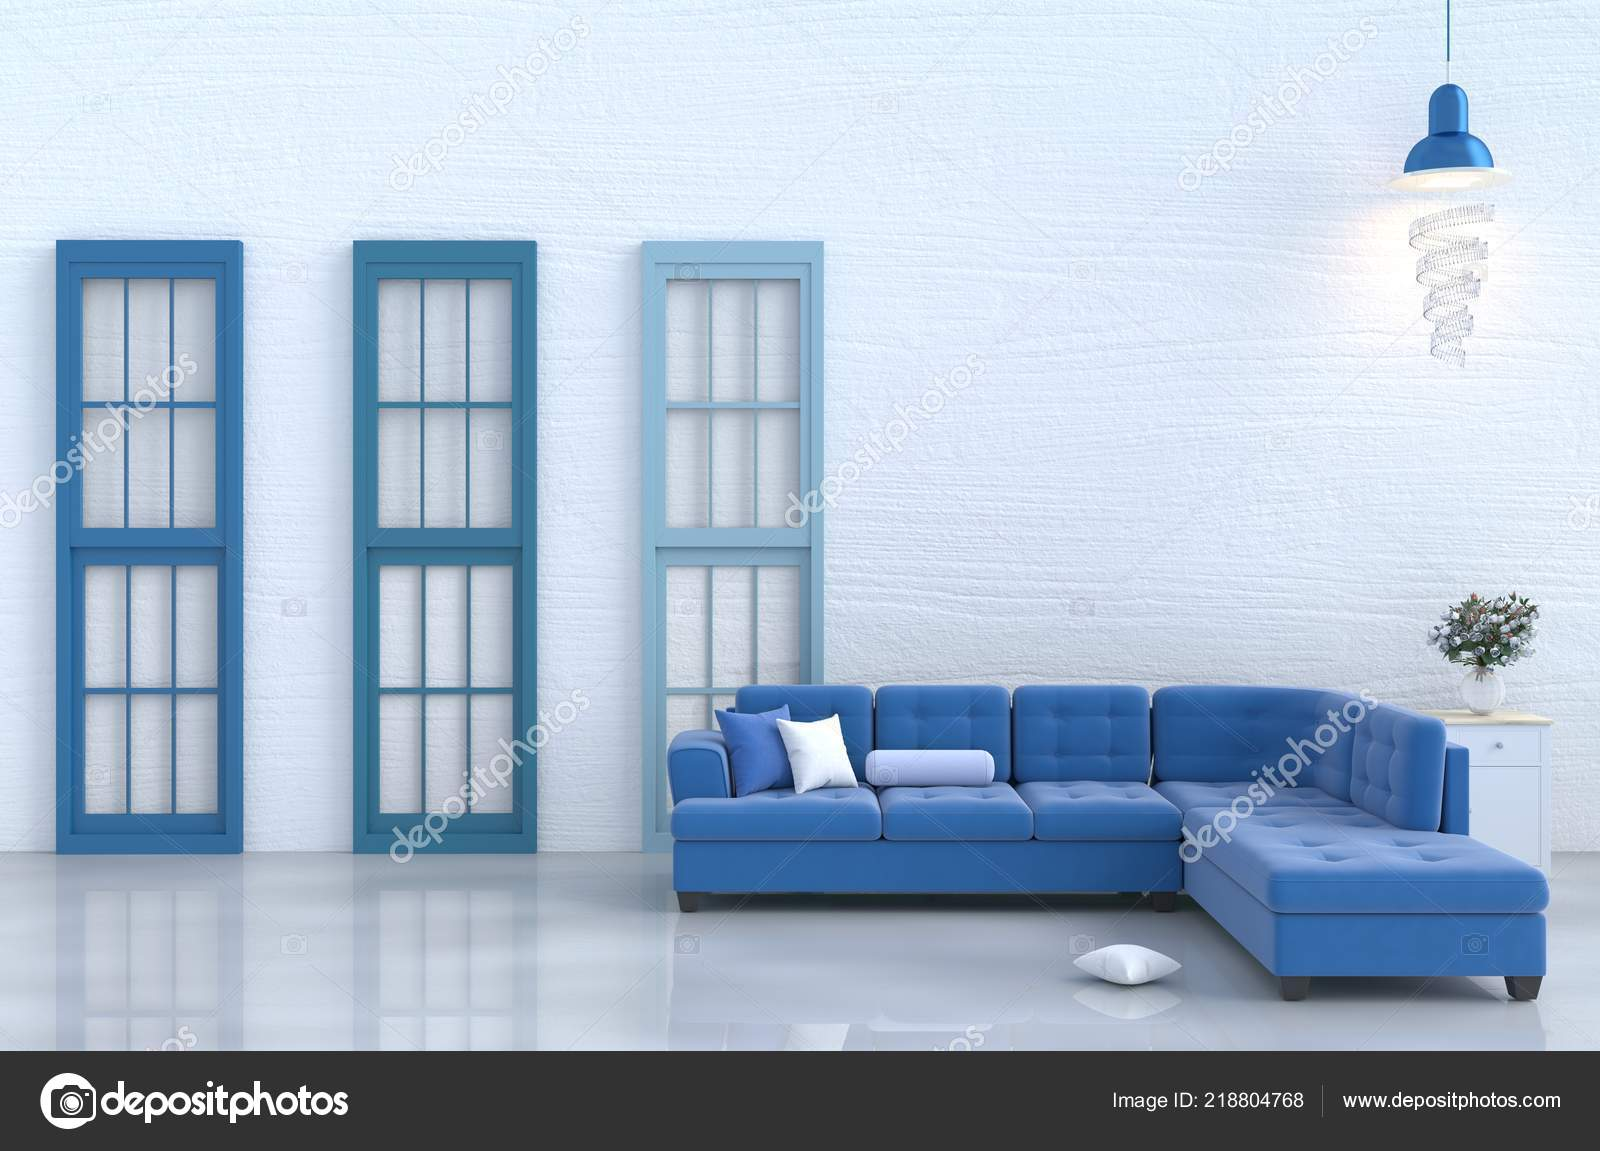 White Living Room Decor Blue Sofa White Wood Wall Pillow